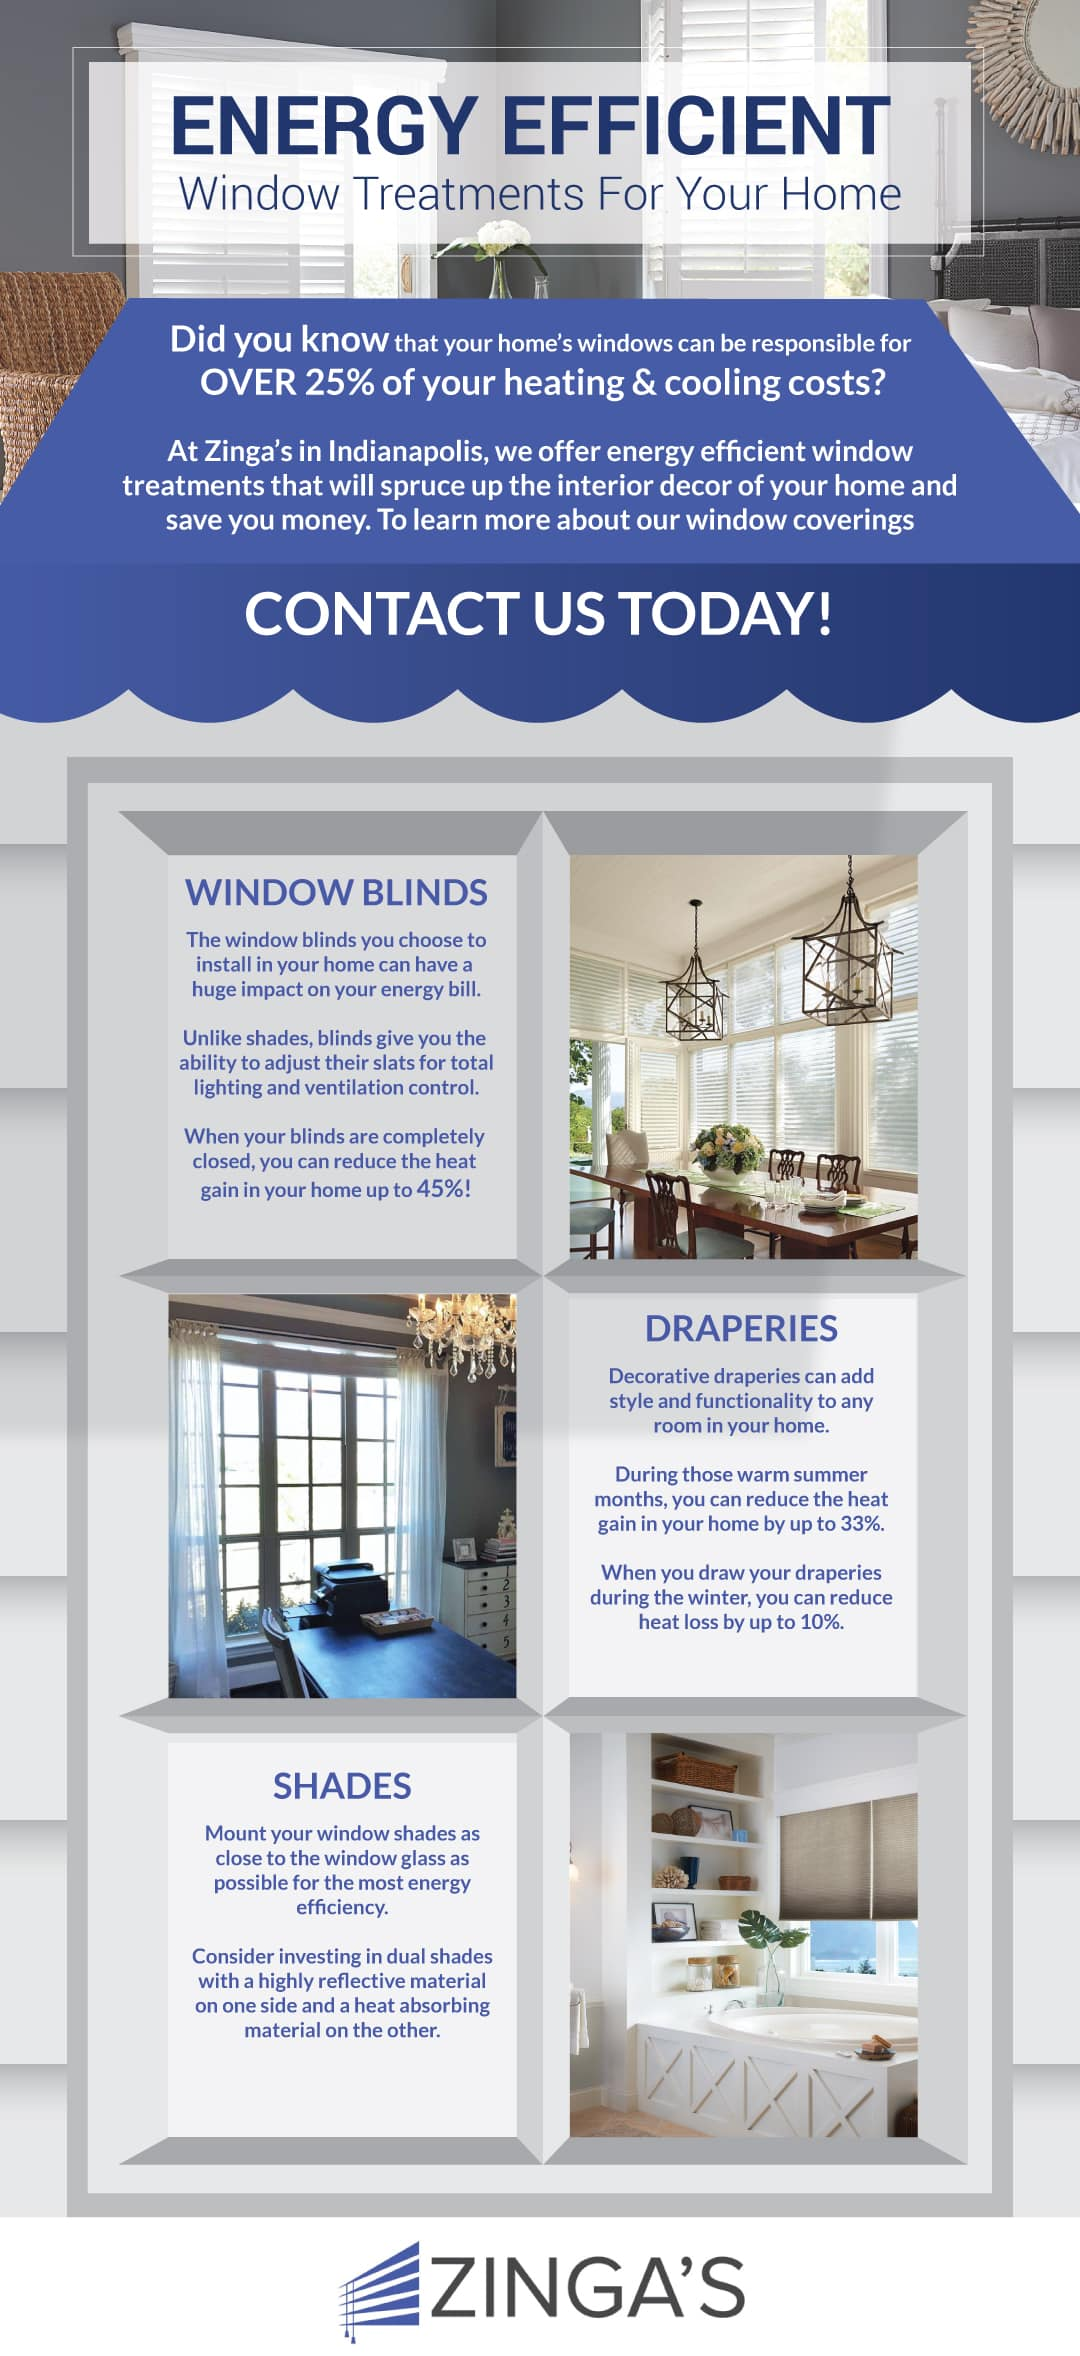 If You Re Interested In Learning More About Our Large Selection Of Blinds Shades Shutters And Draperies Contact Us Today